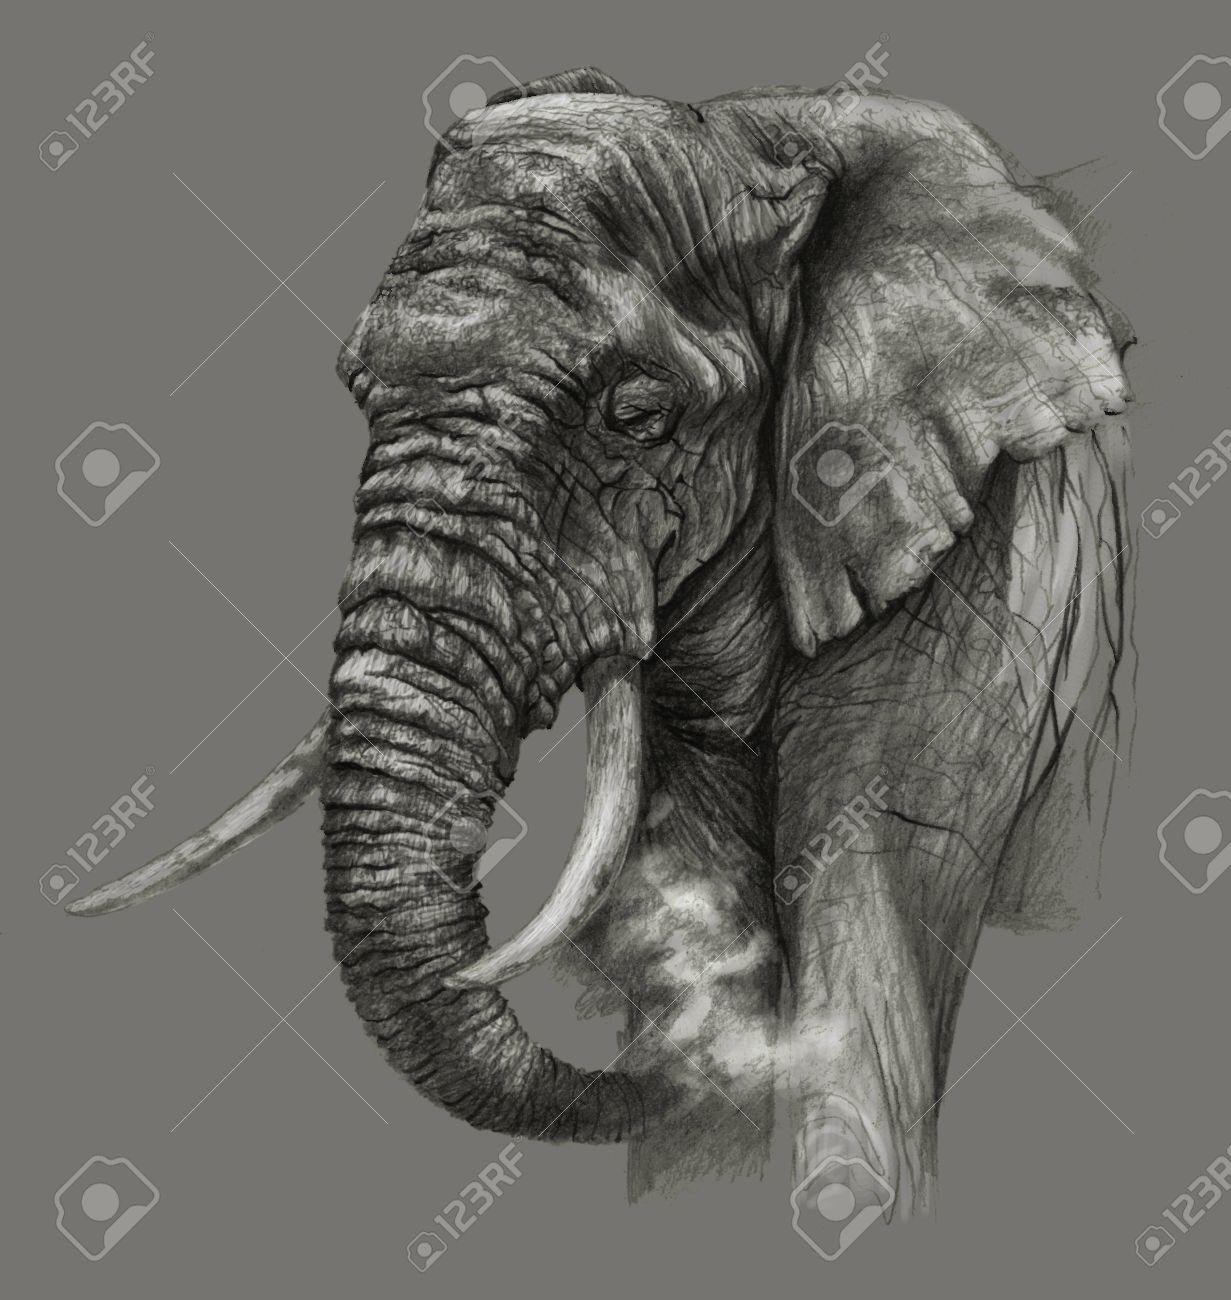 Sketch african elephant on gray background detailed pencil drawing stock photo 52914816